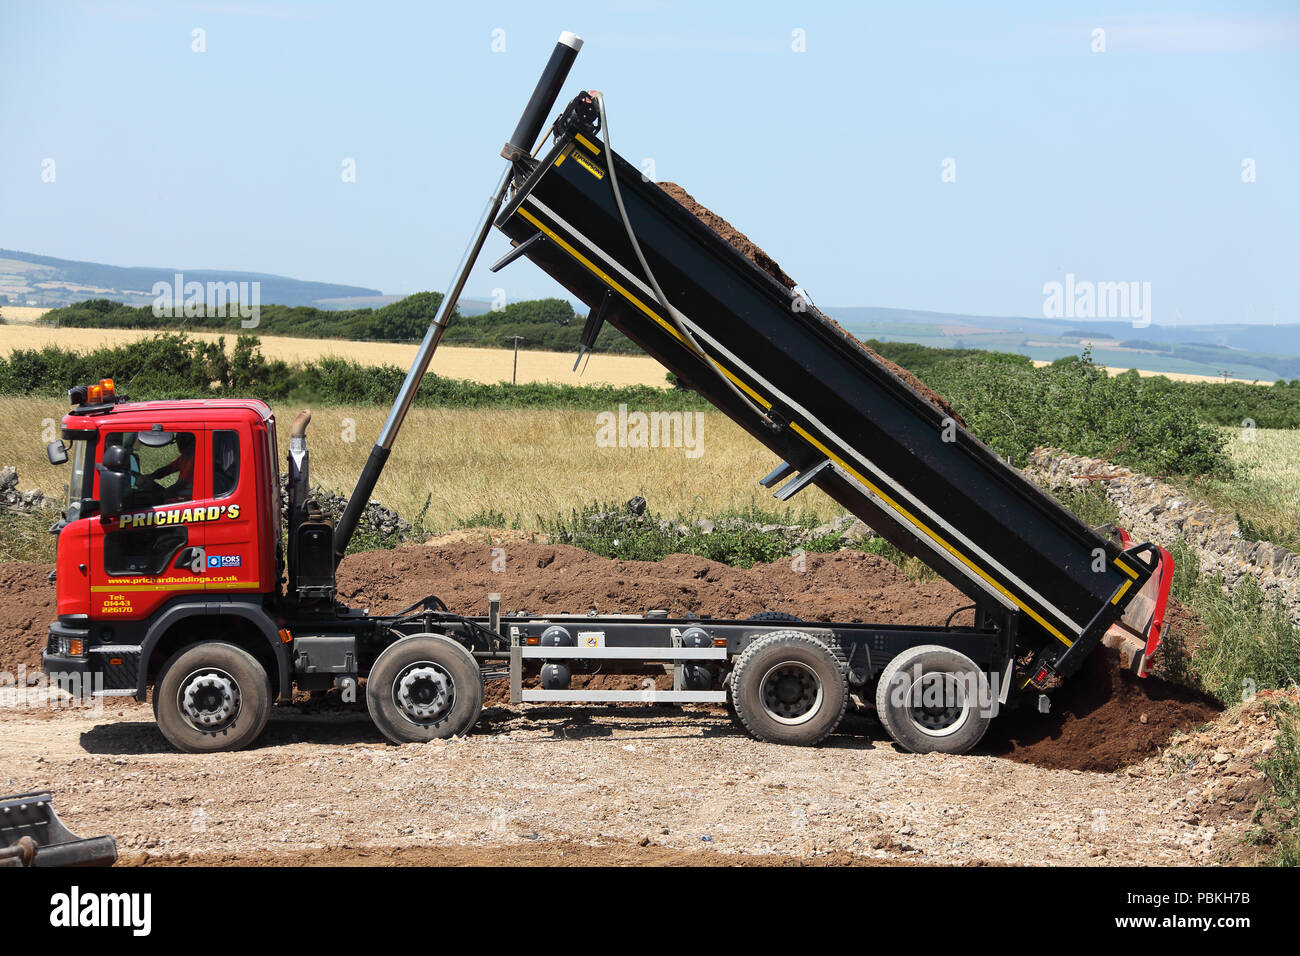 Anew tipper lorry delivering its full load of fresh earth during restoration of an ex building site with earth sliding out of the rear tailgate. Stock Photo